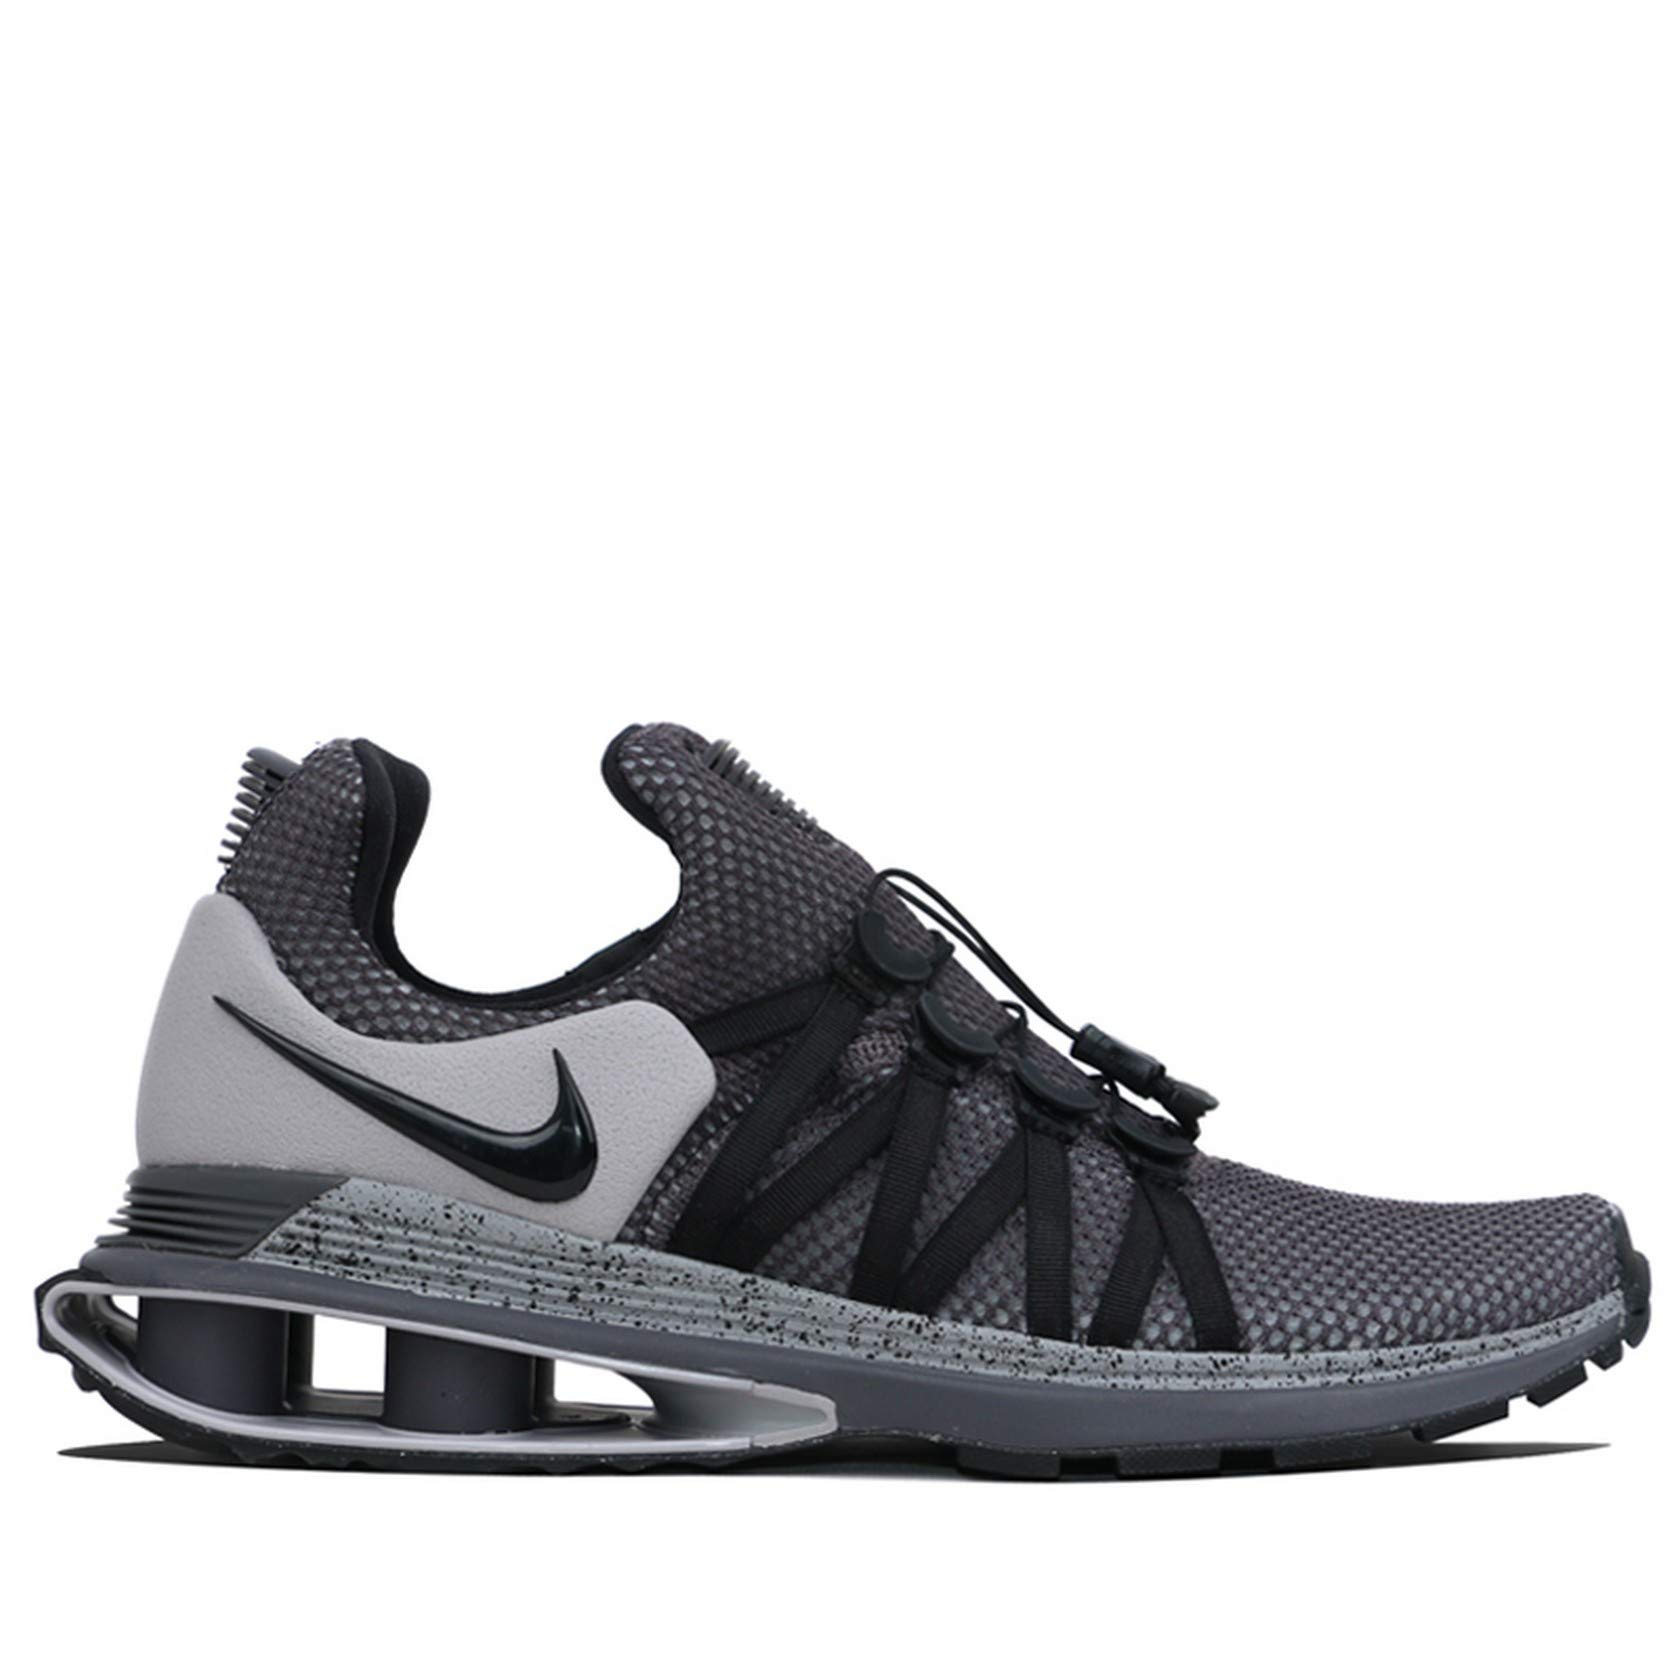 Galleon - Nike Men s Shox Gravity Running Shoes Grey Black Size 10 D(M) US d1117d960